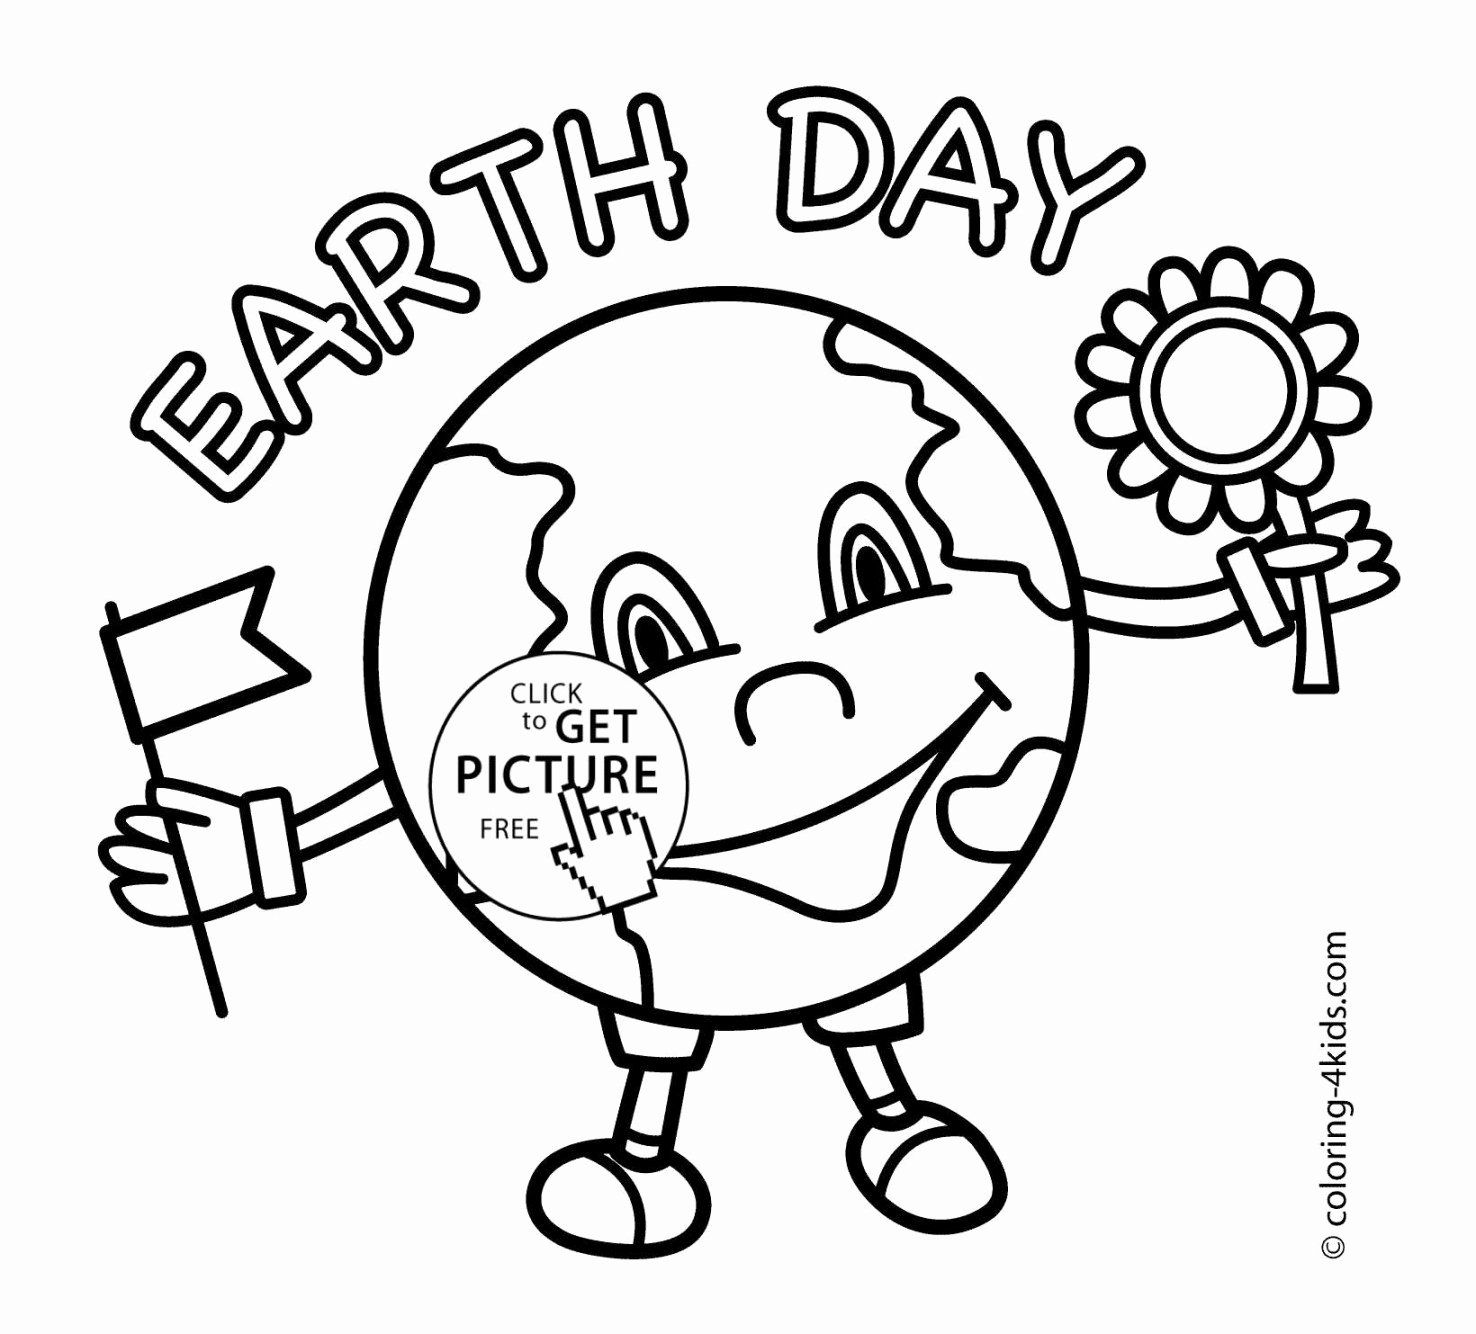 Coloring Pages For Your Boyfriend Awesome Noir Spiderman Coloring Pages Mrsztuczkens Earth Day Coloring Pages Earth Coloring Pages Space Coloring Pages